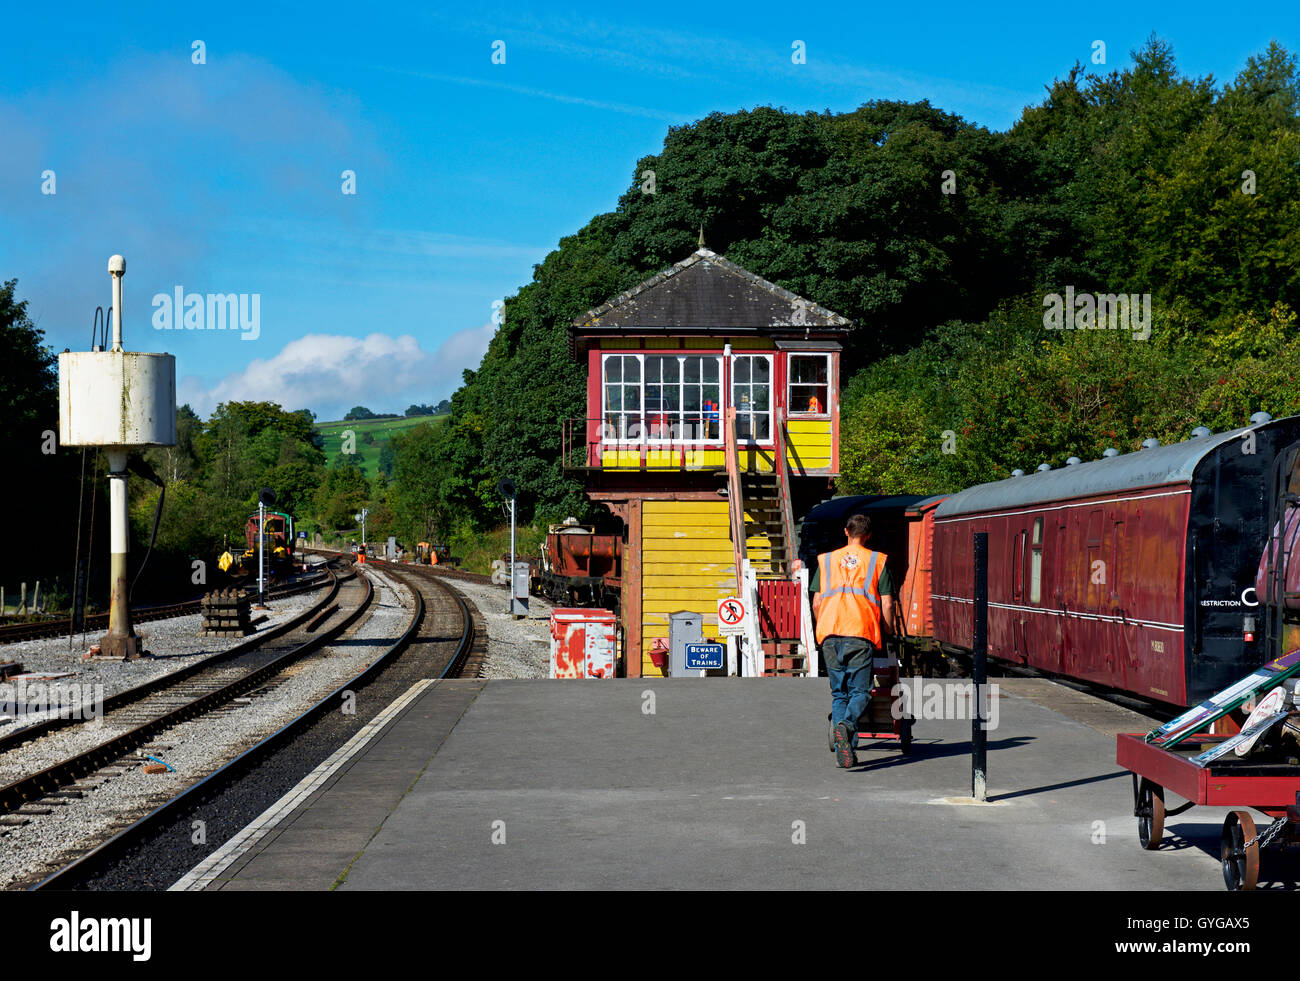 Bolton Abbey railway station, on the Embsay and Bolton Abbey Steam Railway, North Yorkshire, England UK - Stock Image